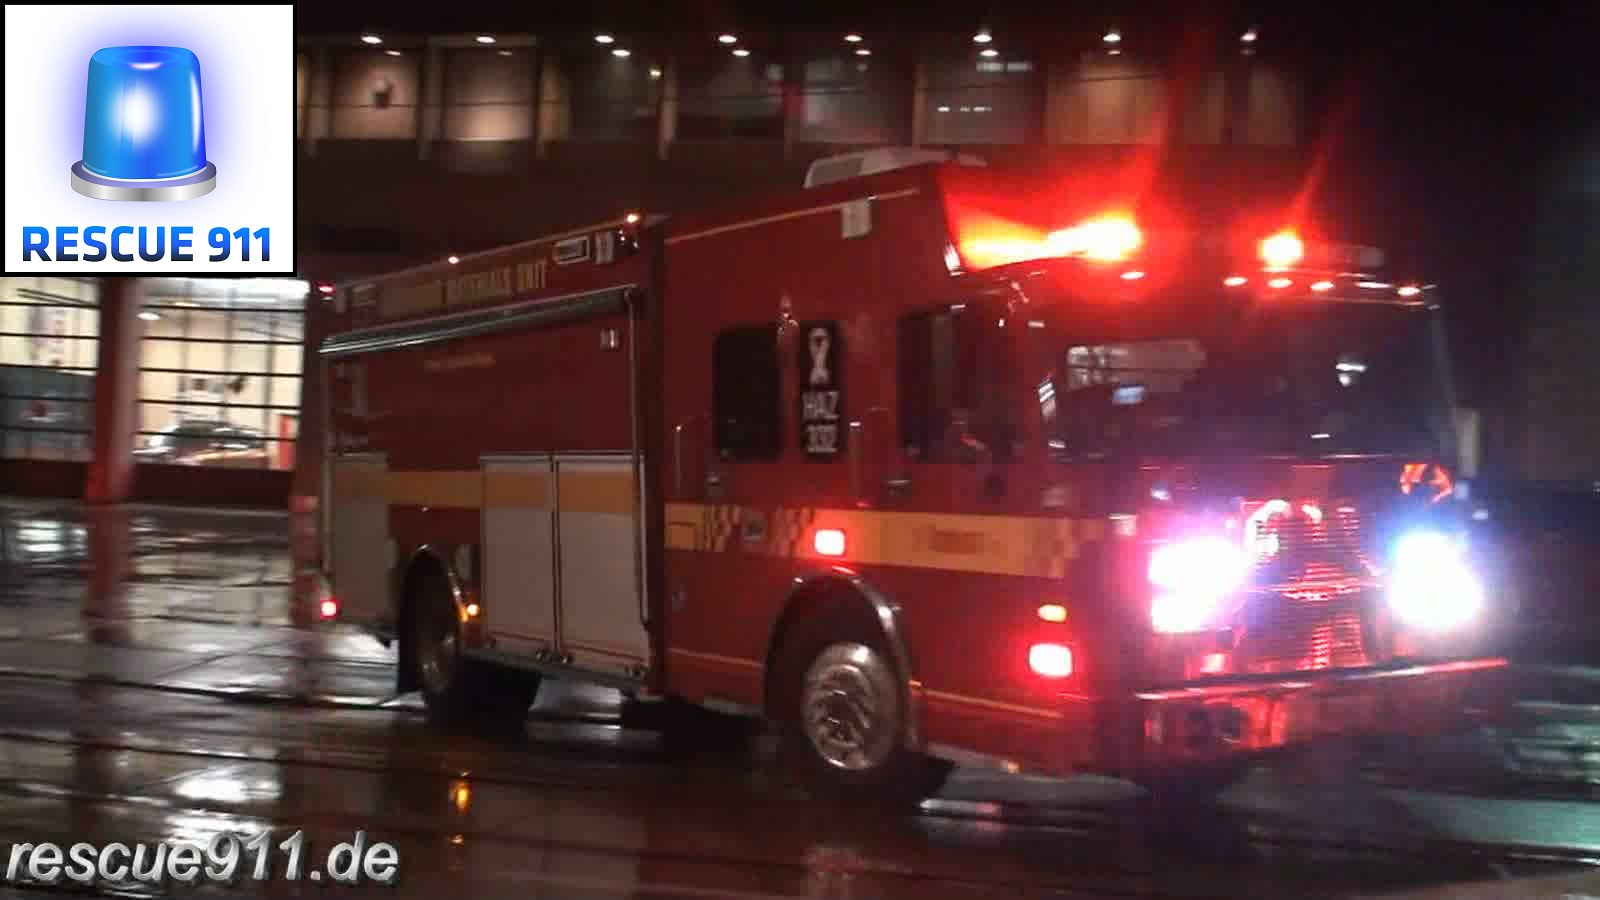 High Rise 332 + Car 33 + Haz Mat 332 Toronto Fire Services (stream)